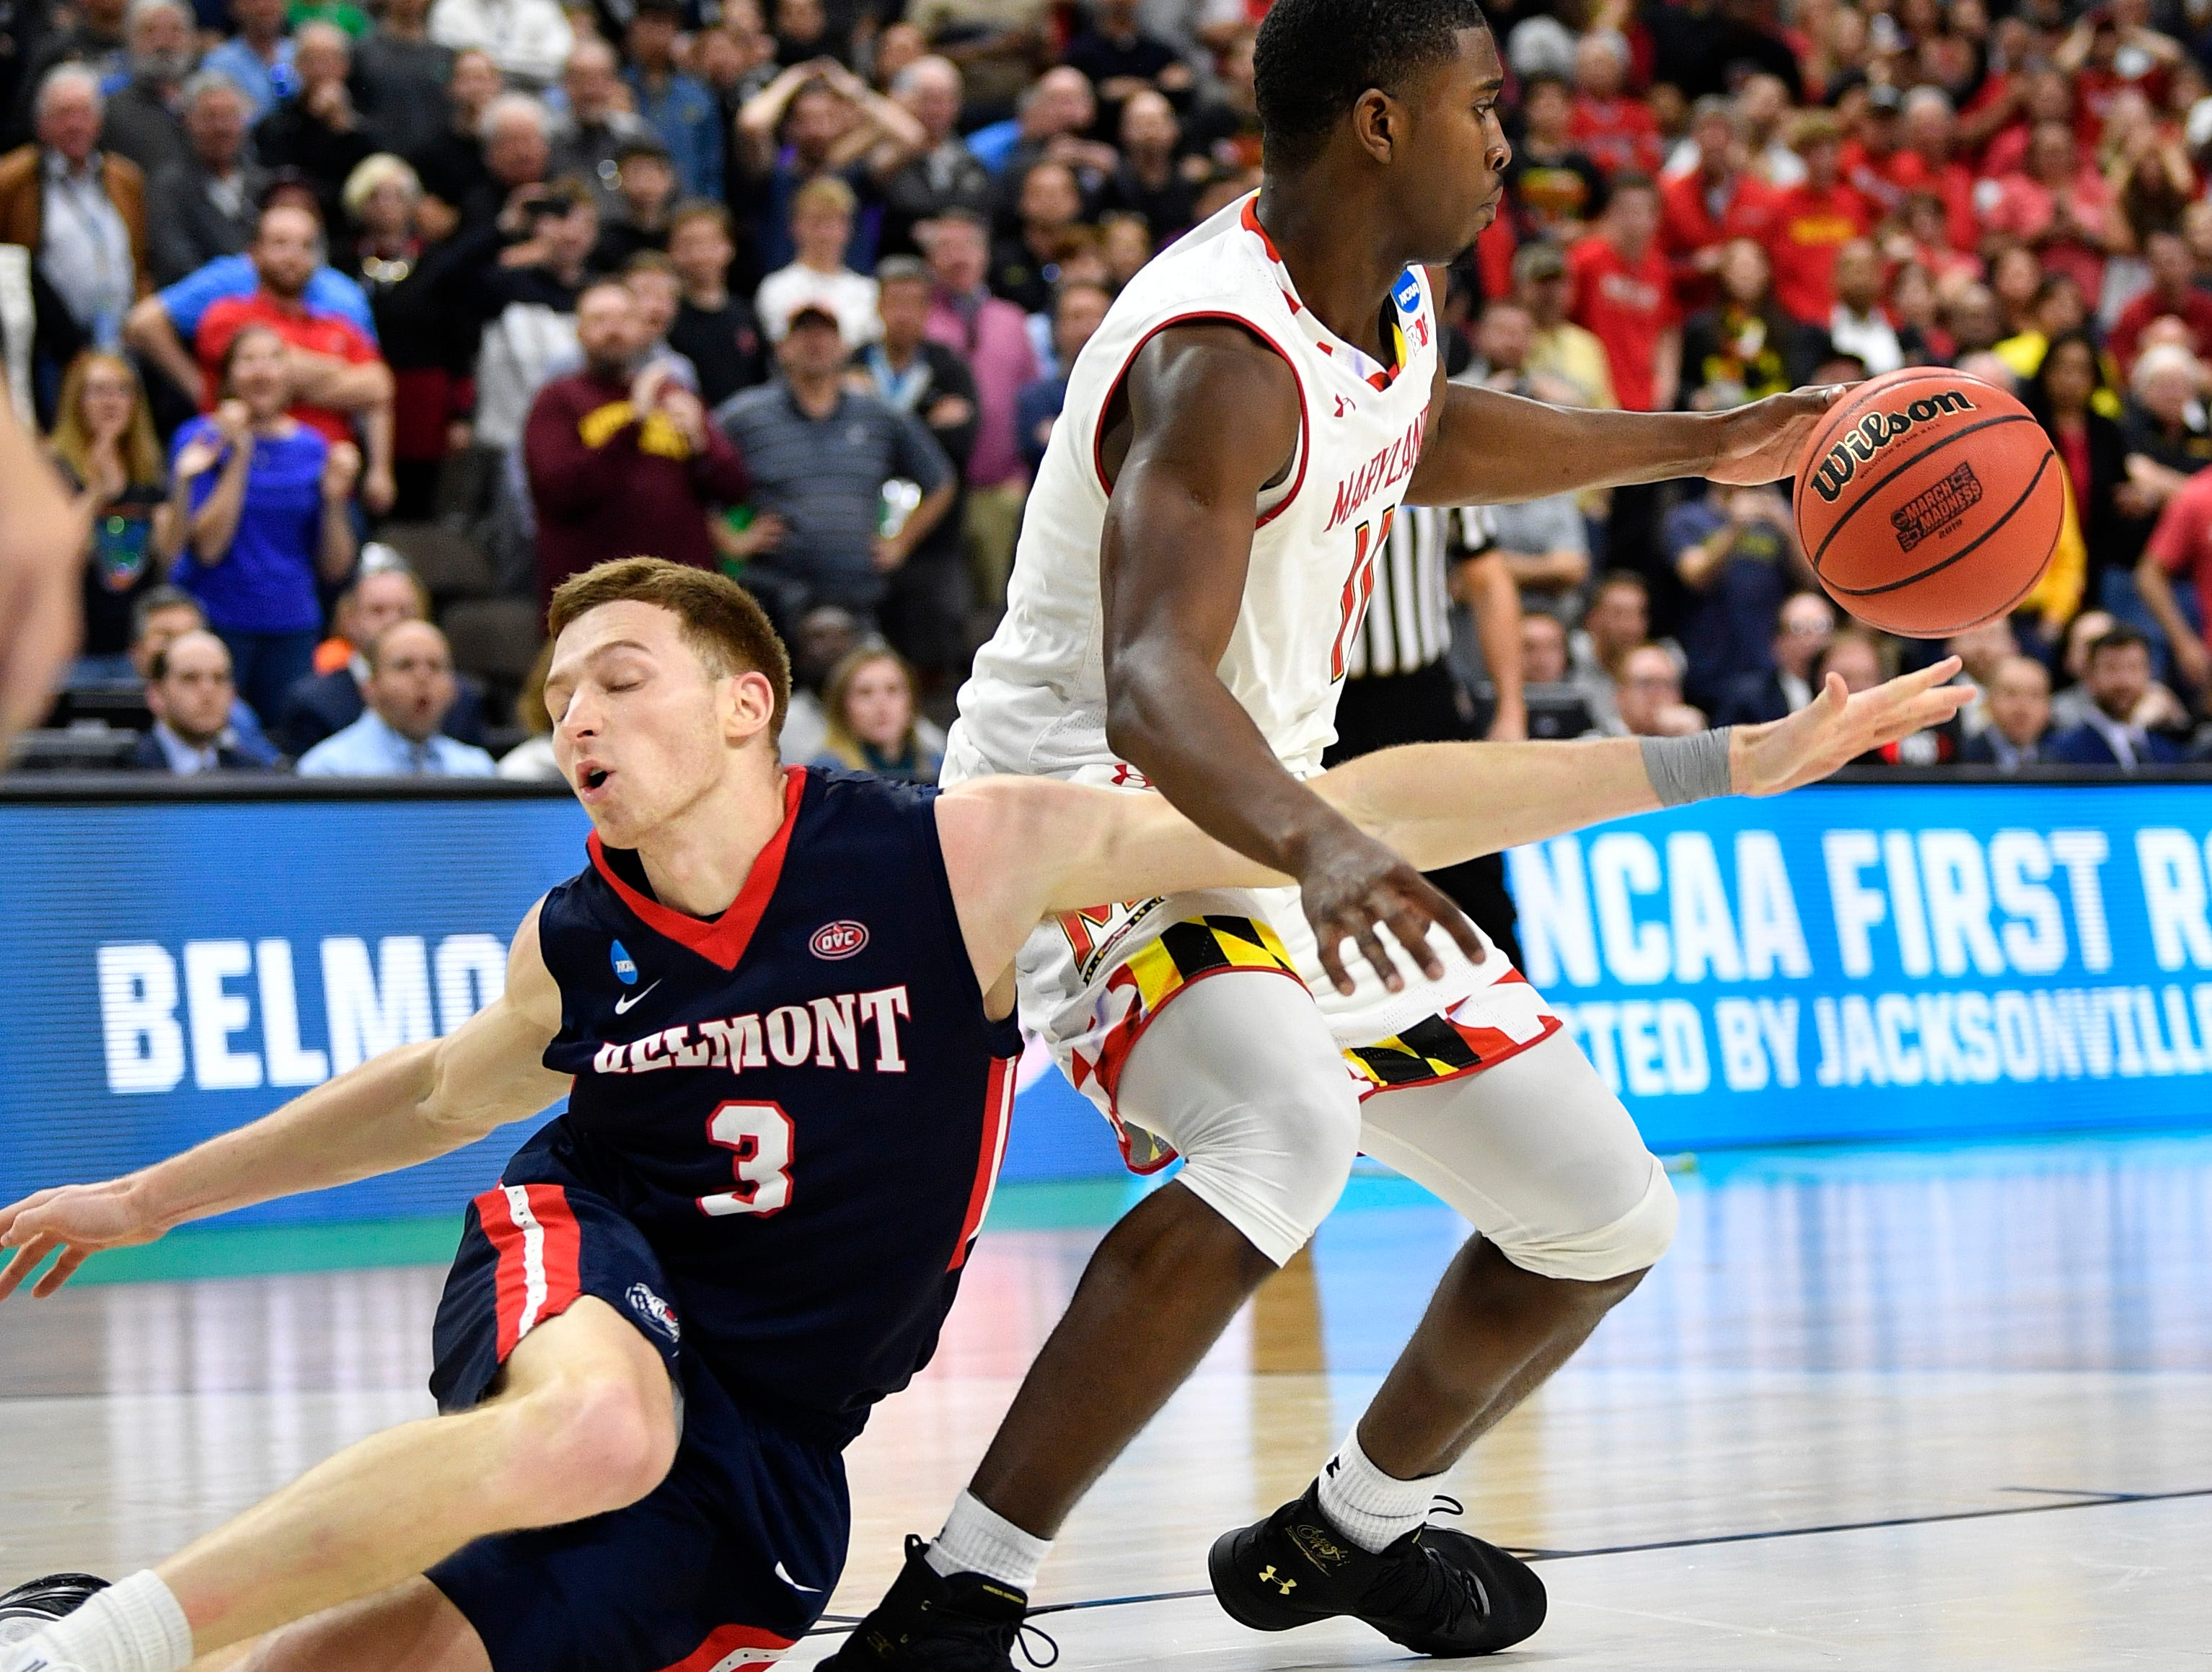 Belmont guard/forward Dylan Windler (3) battles Maryland guard Darryl Morsell (11) with seconds left in the second half of the first-round NCAA college basketball tournament game at VyStar Veterans Memorial Arena in Jacksonville, Fla., Thursday, March 21, 2019.